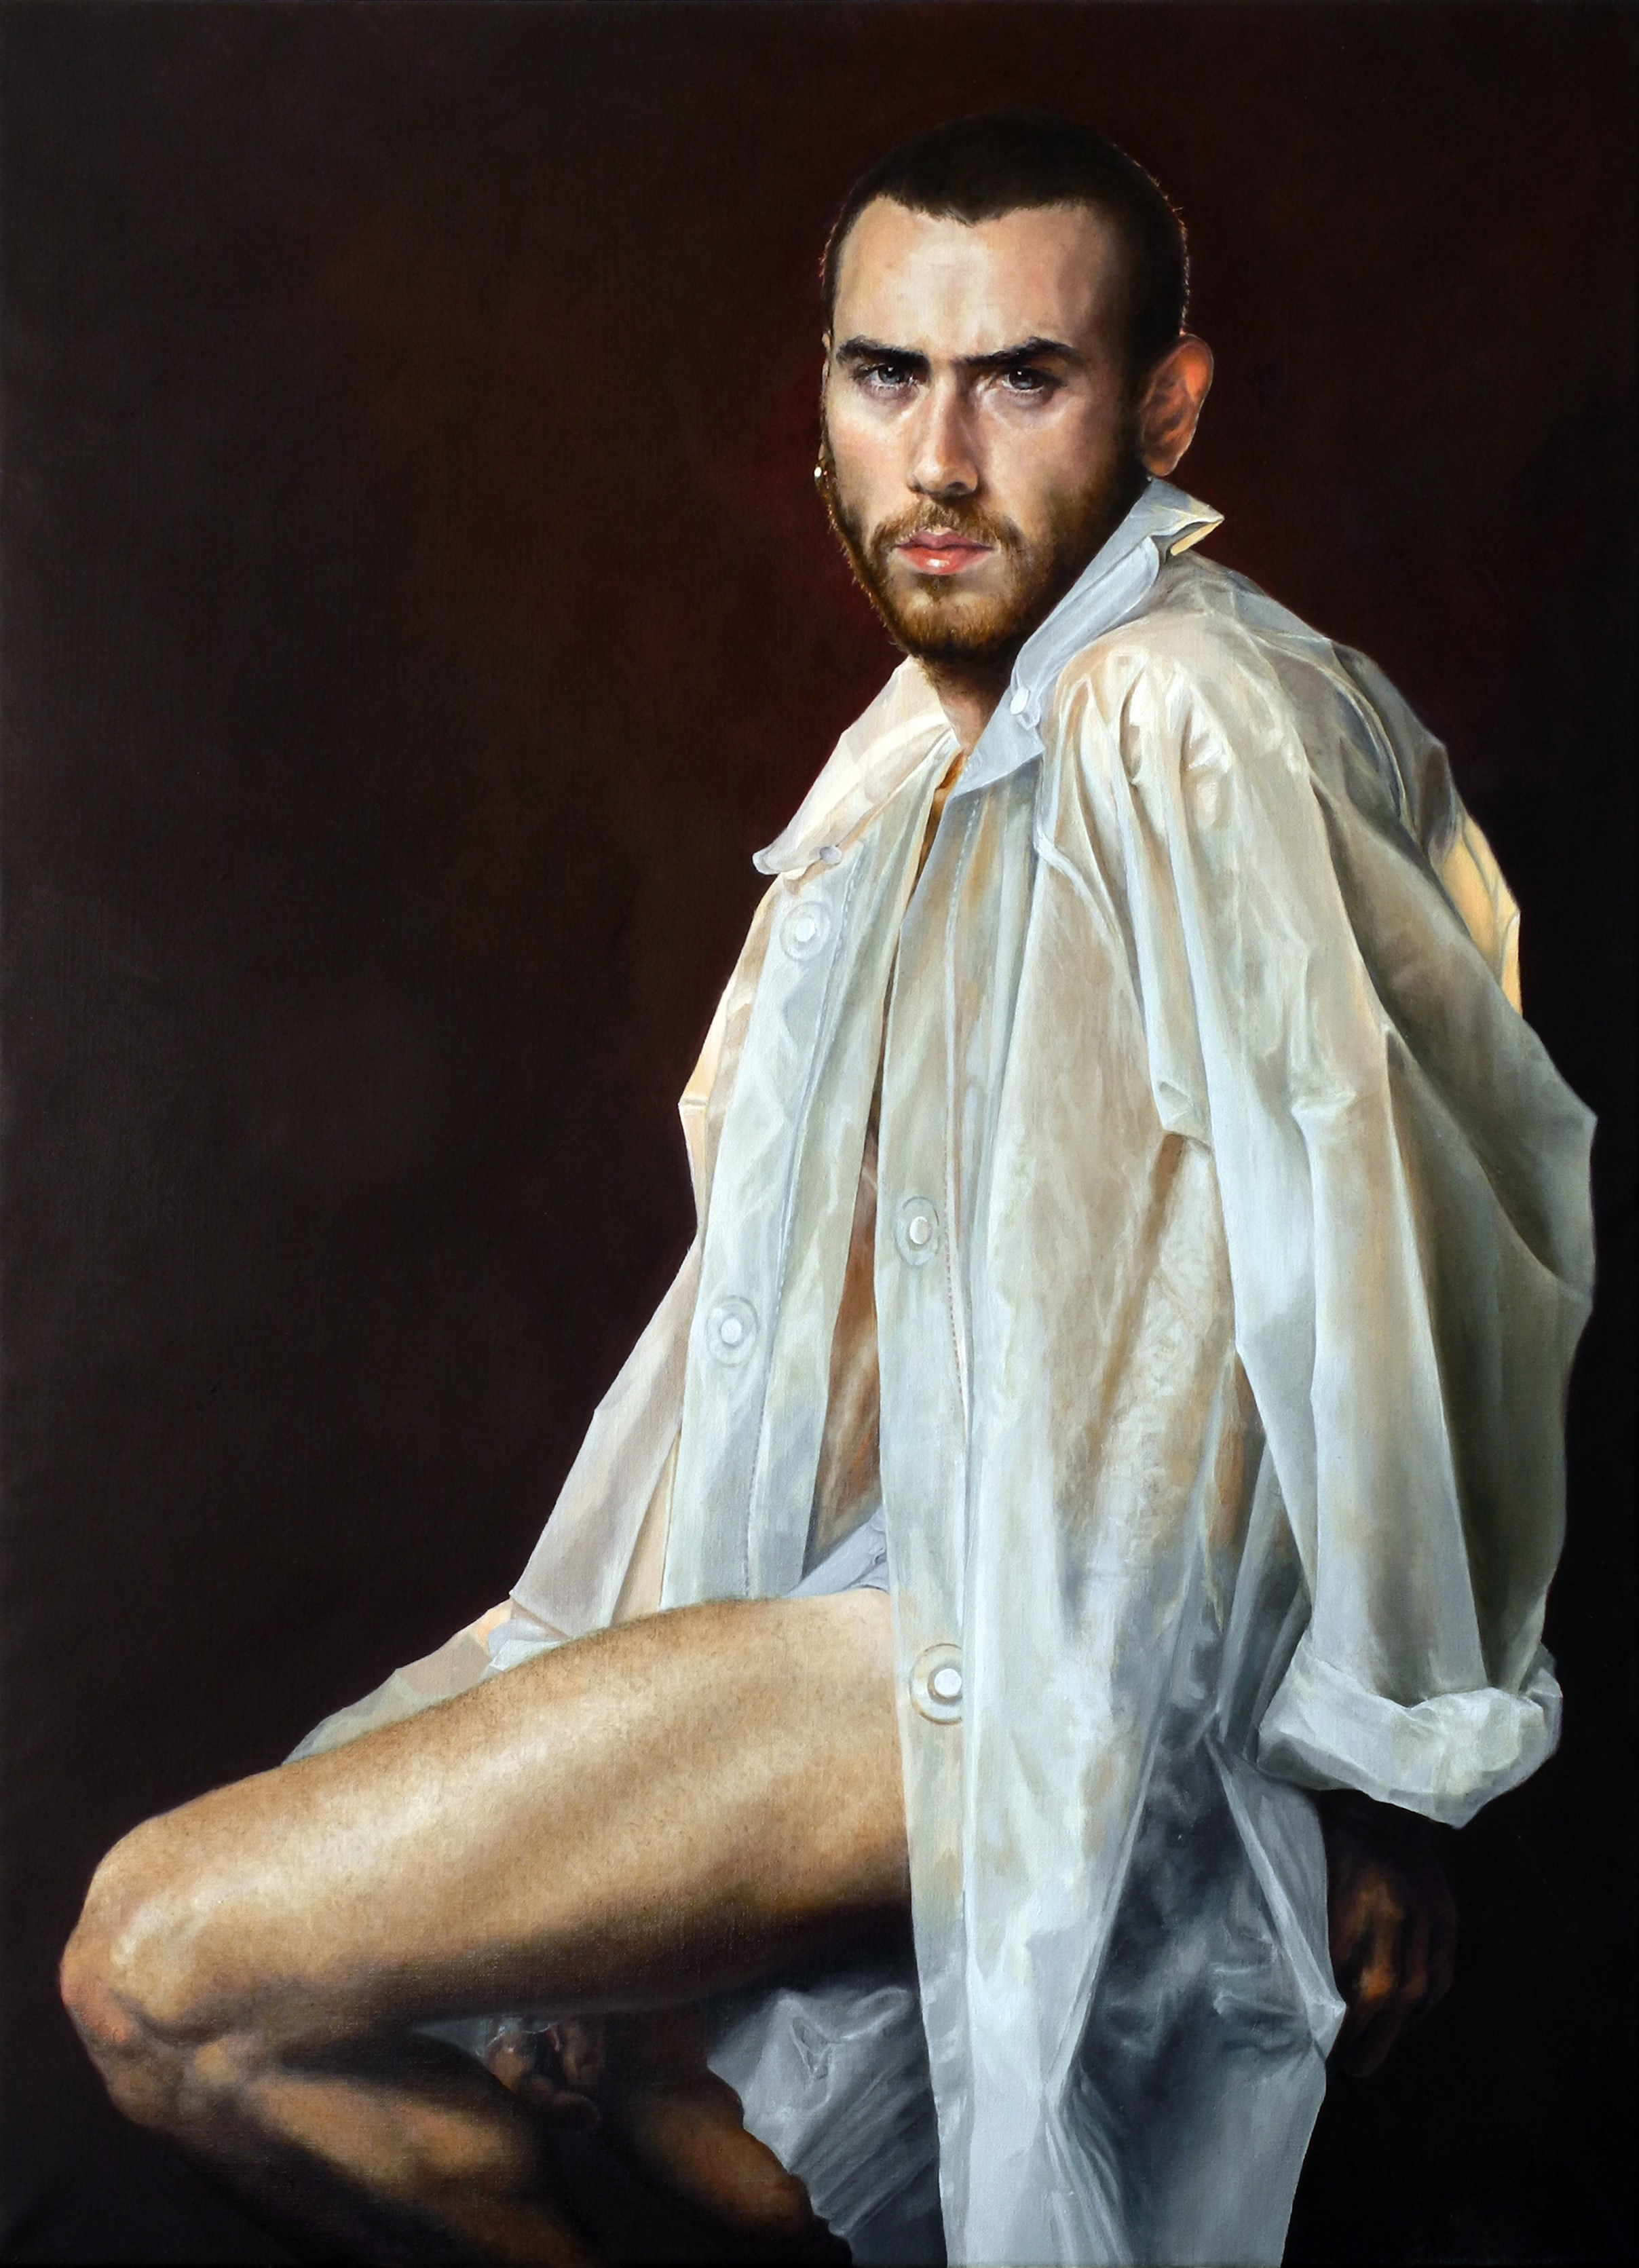 Alessandro Tomassetti  |  My Insatiable One  | Oil on Linen | 39 ½ x 28 ¾ inches or 100 ½ x 73 cm